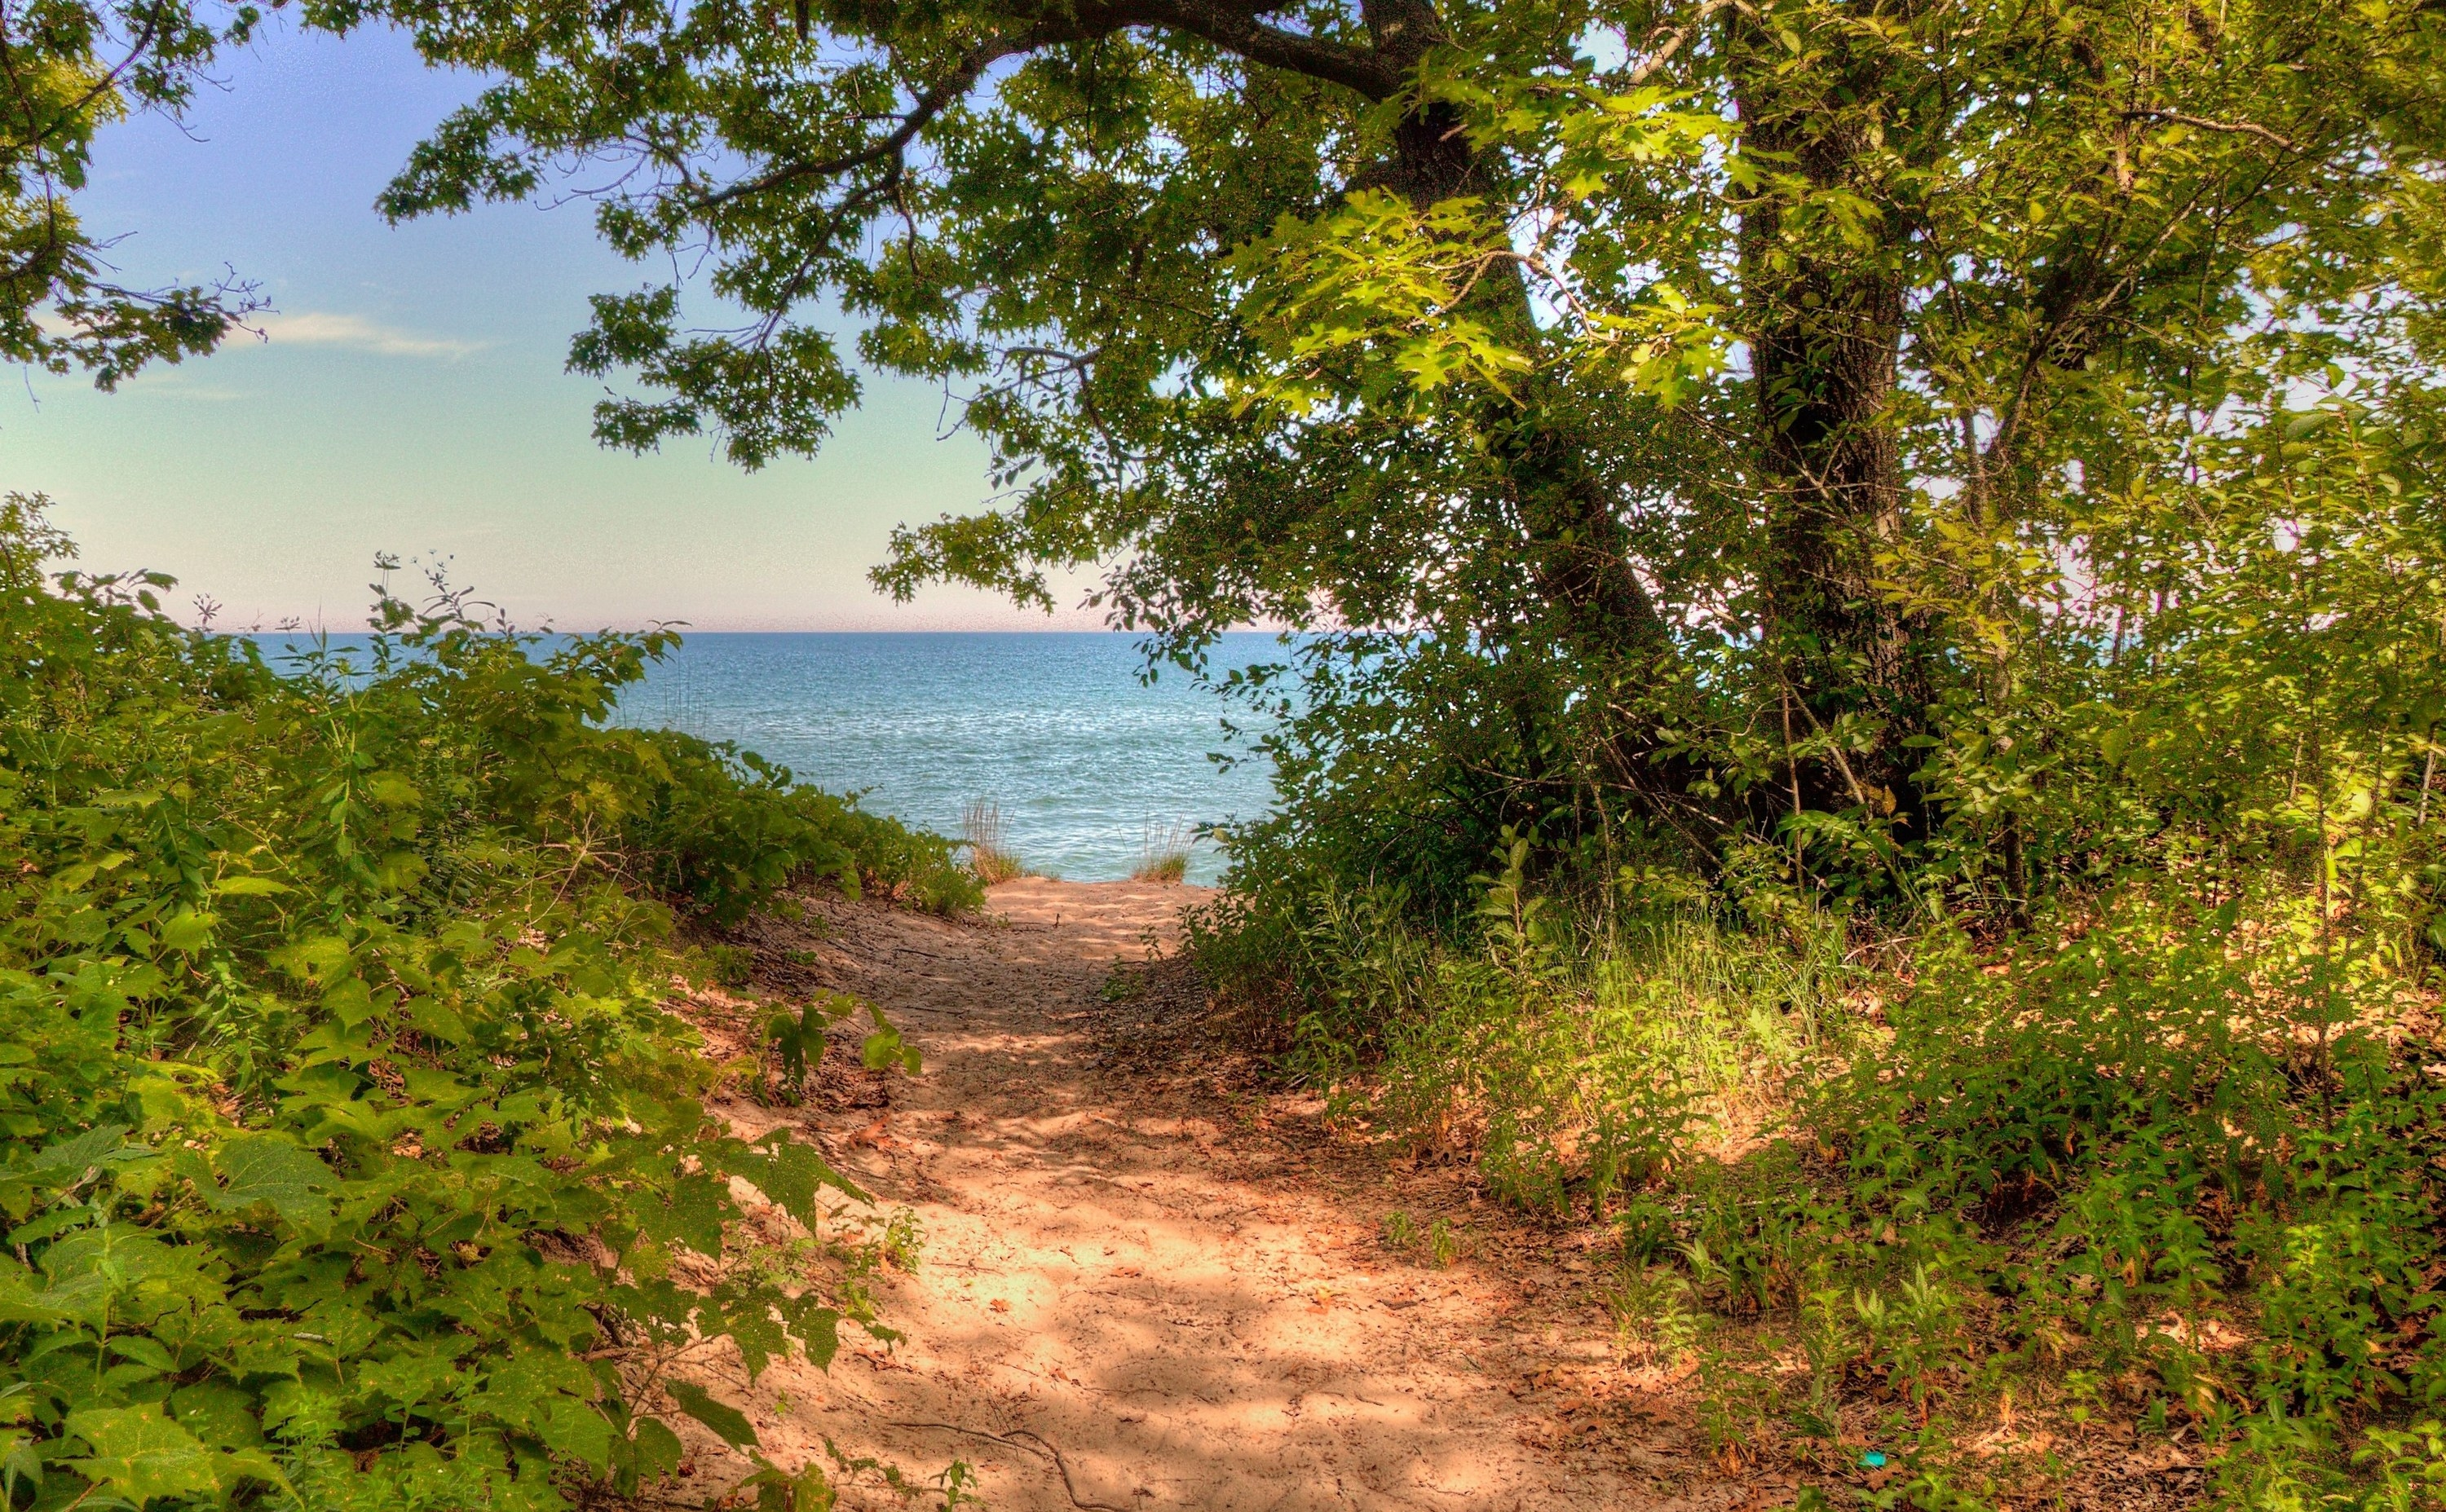 Photo of a trail leading to water at theIllinois Beach State Park